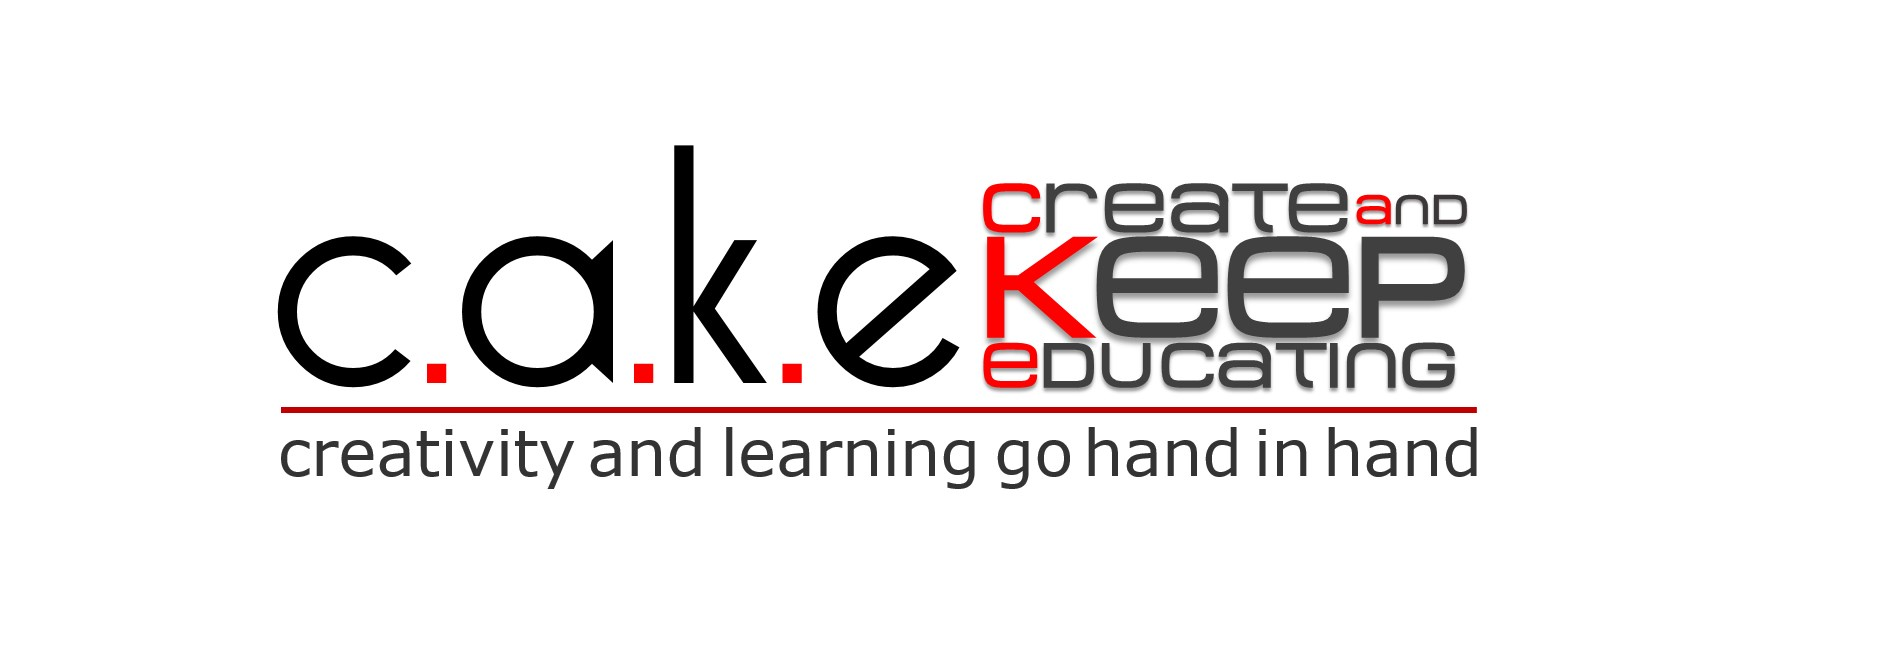 Create And Keep Educating – Page 2